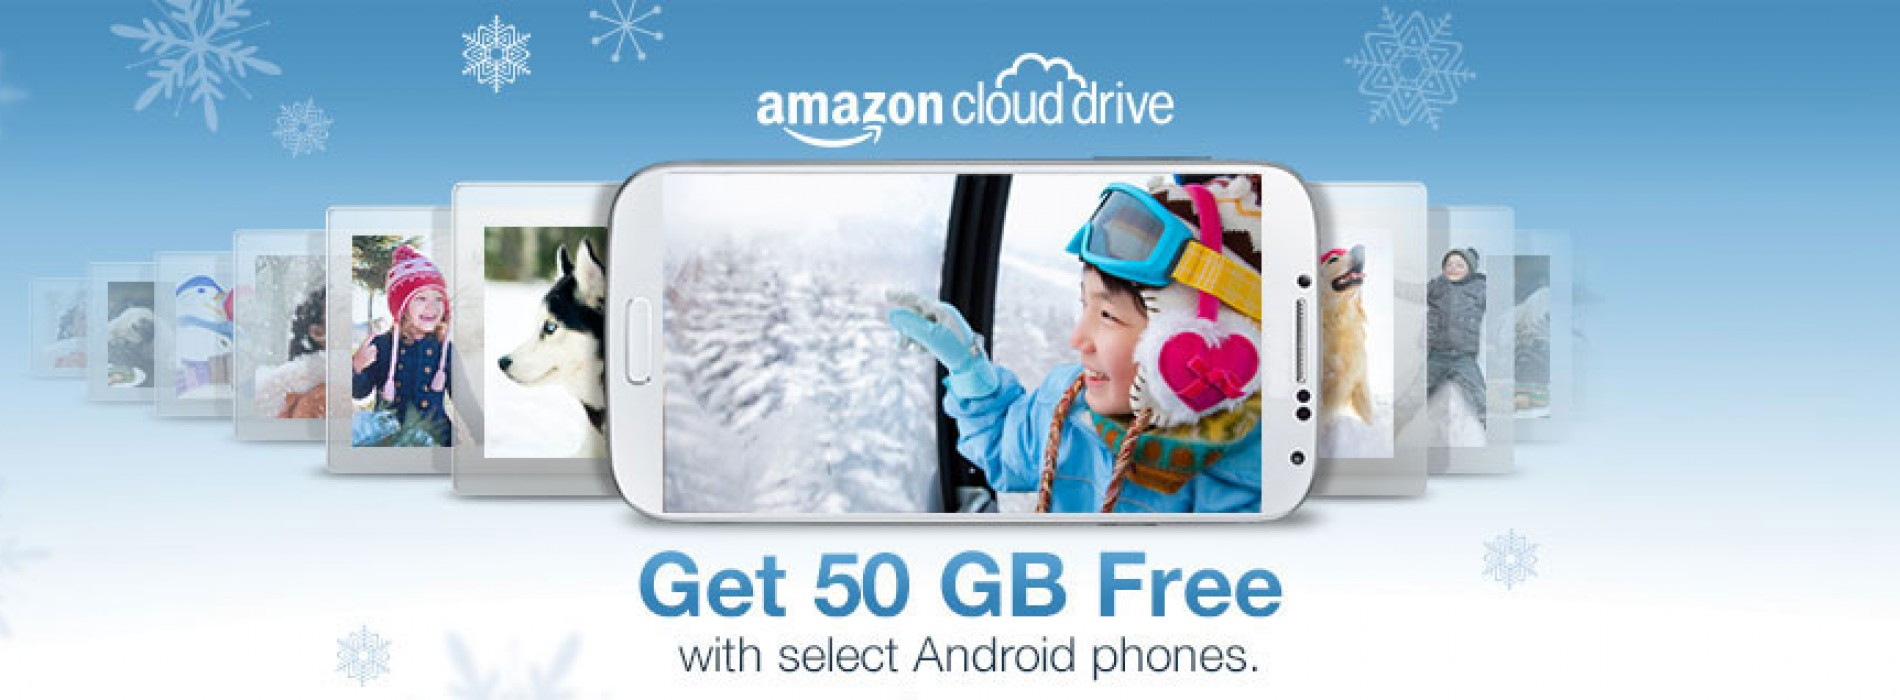 Amazon offering 50GB Cloud Drive with purchase of select Androids